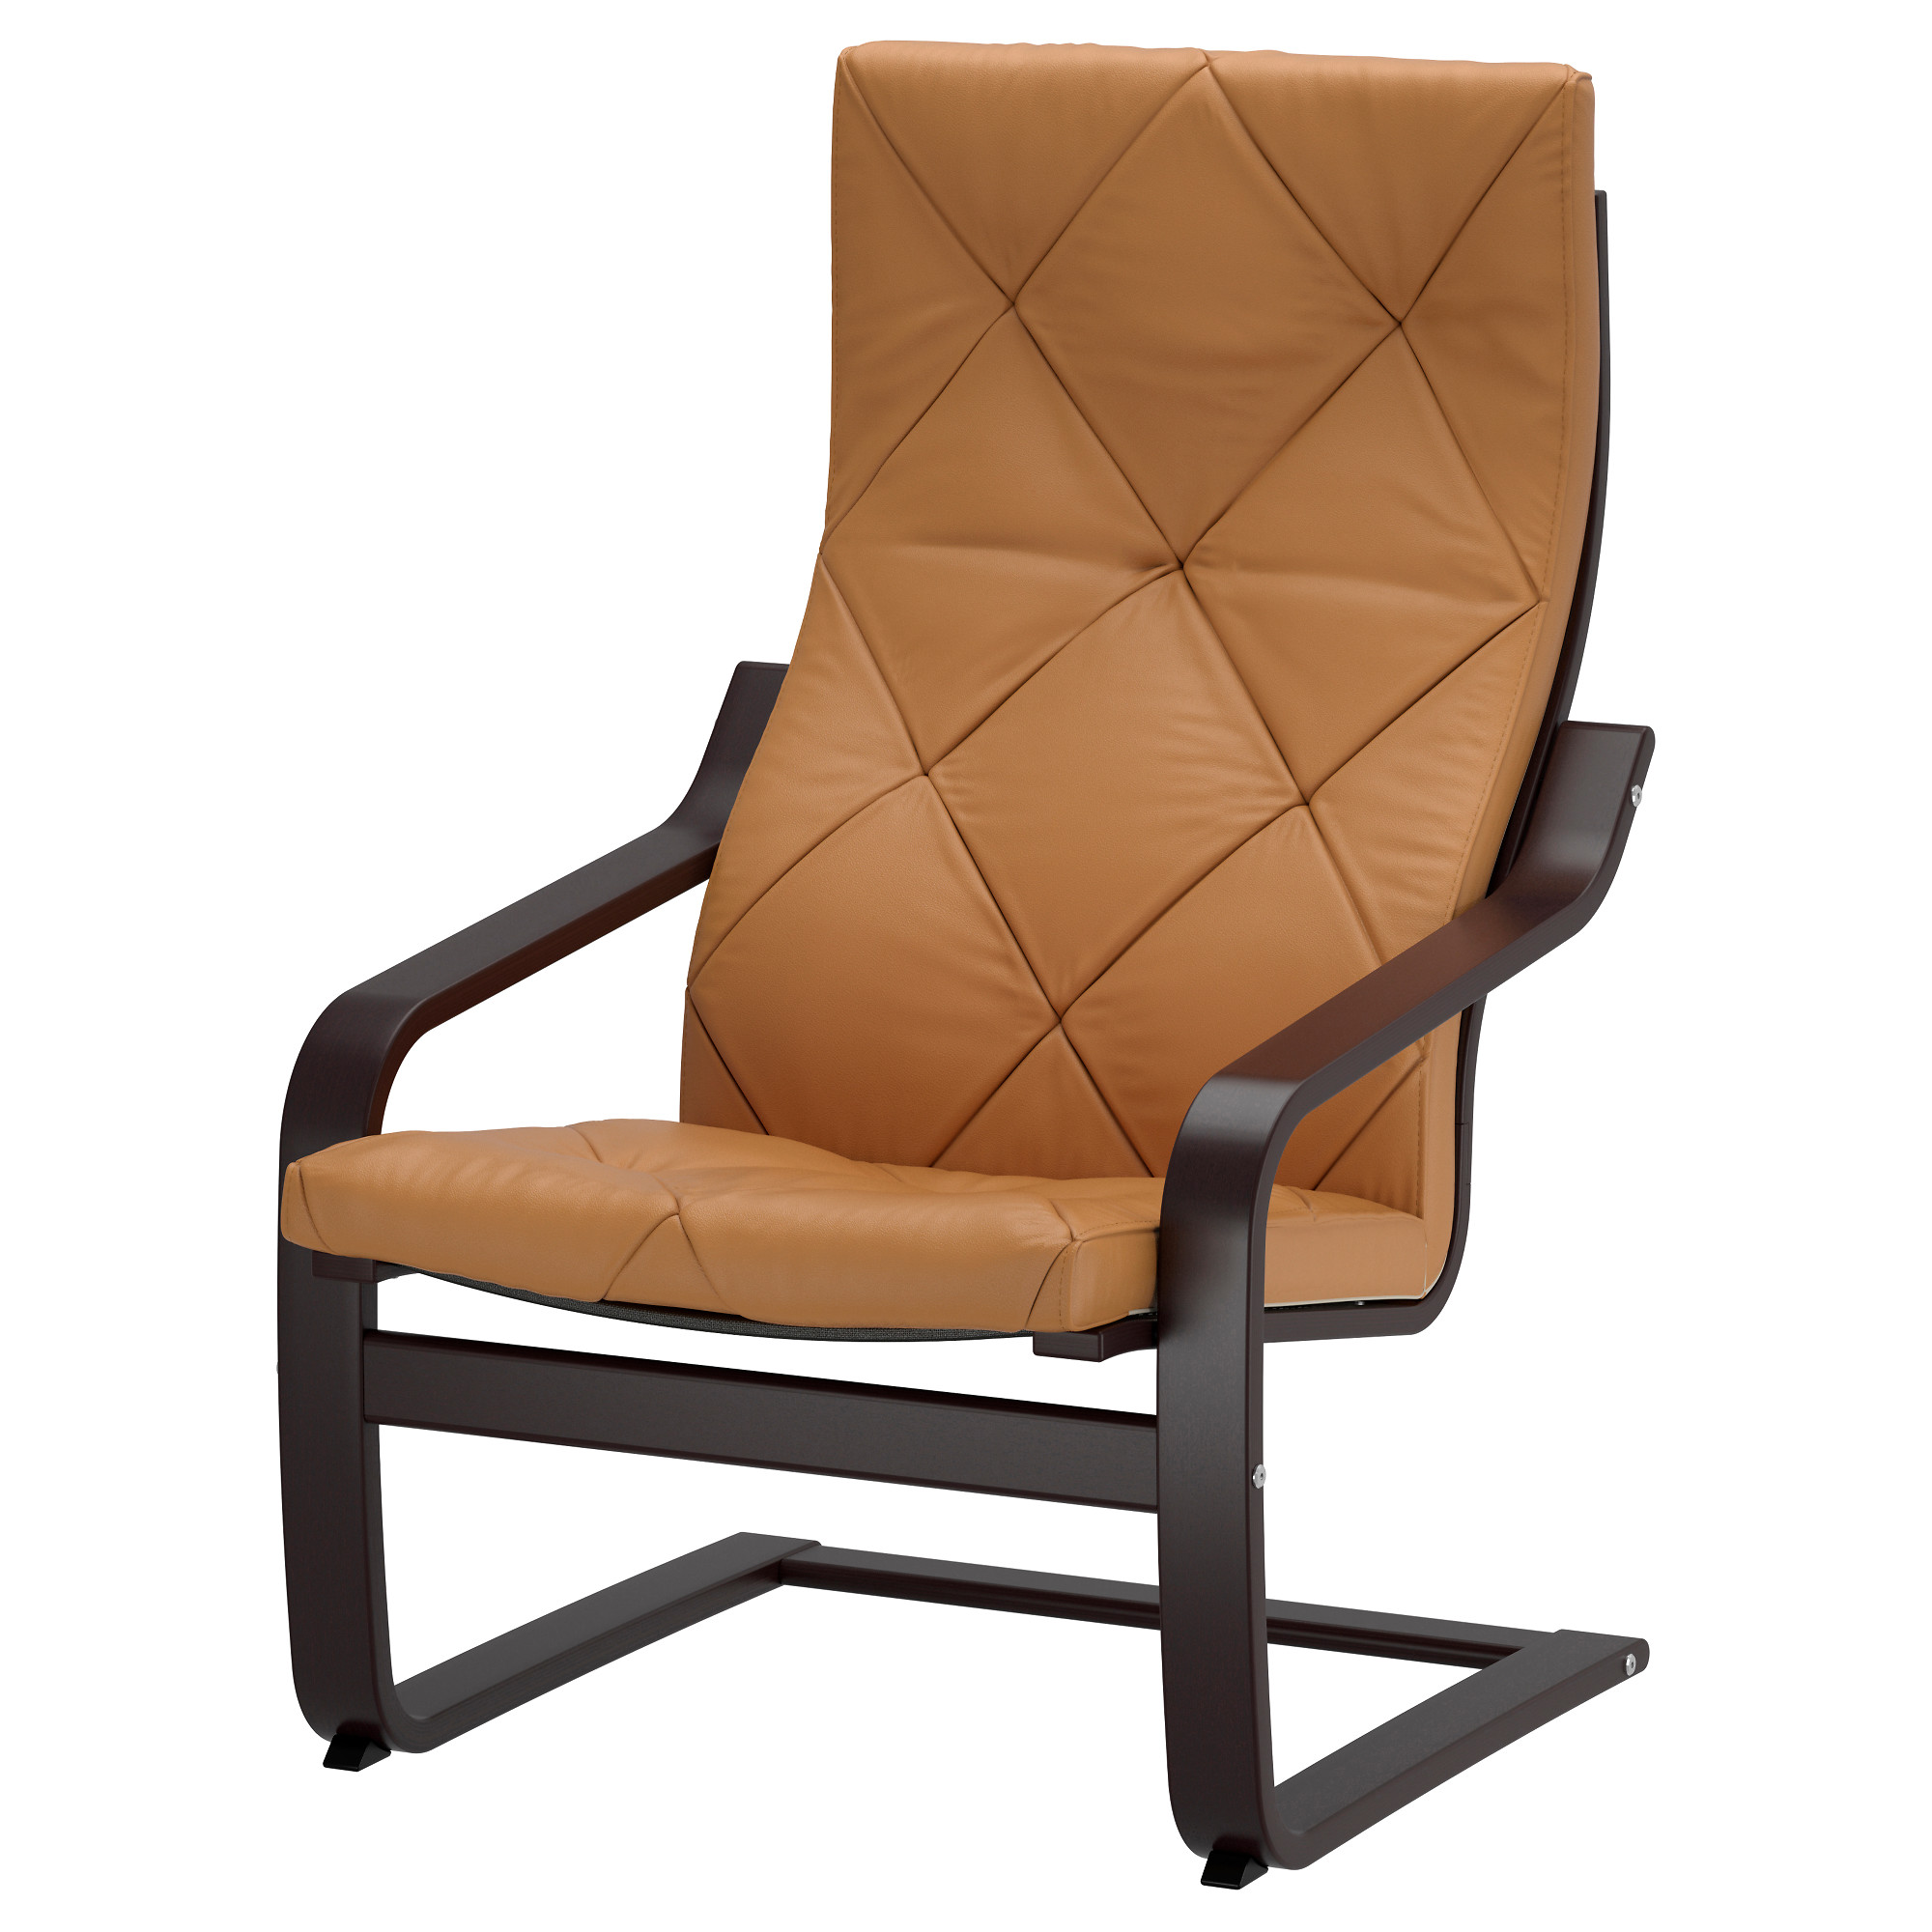 Ikea leather chair brown - Po Ng Armchair Black Brown Seglora Natural Width 26 3 4